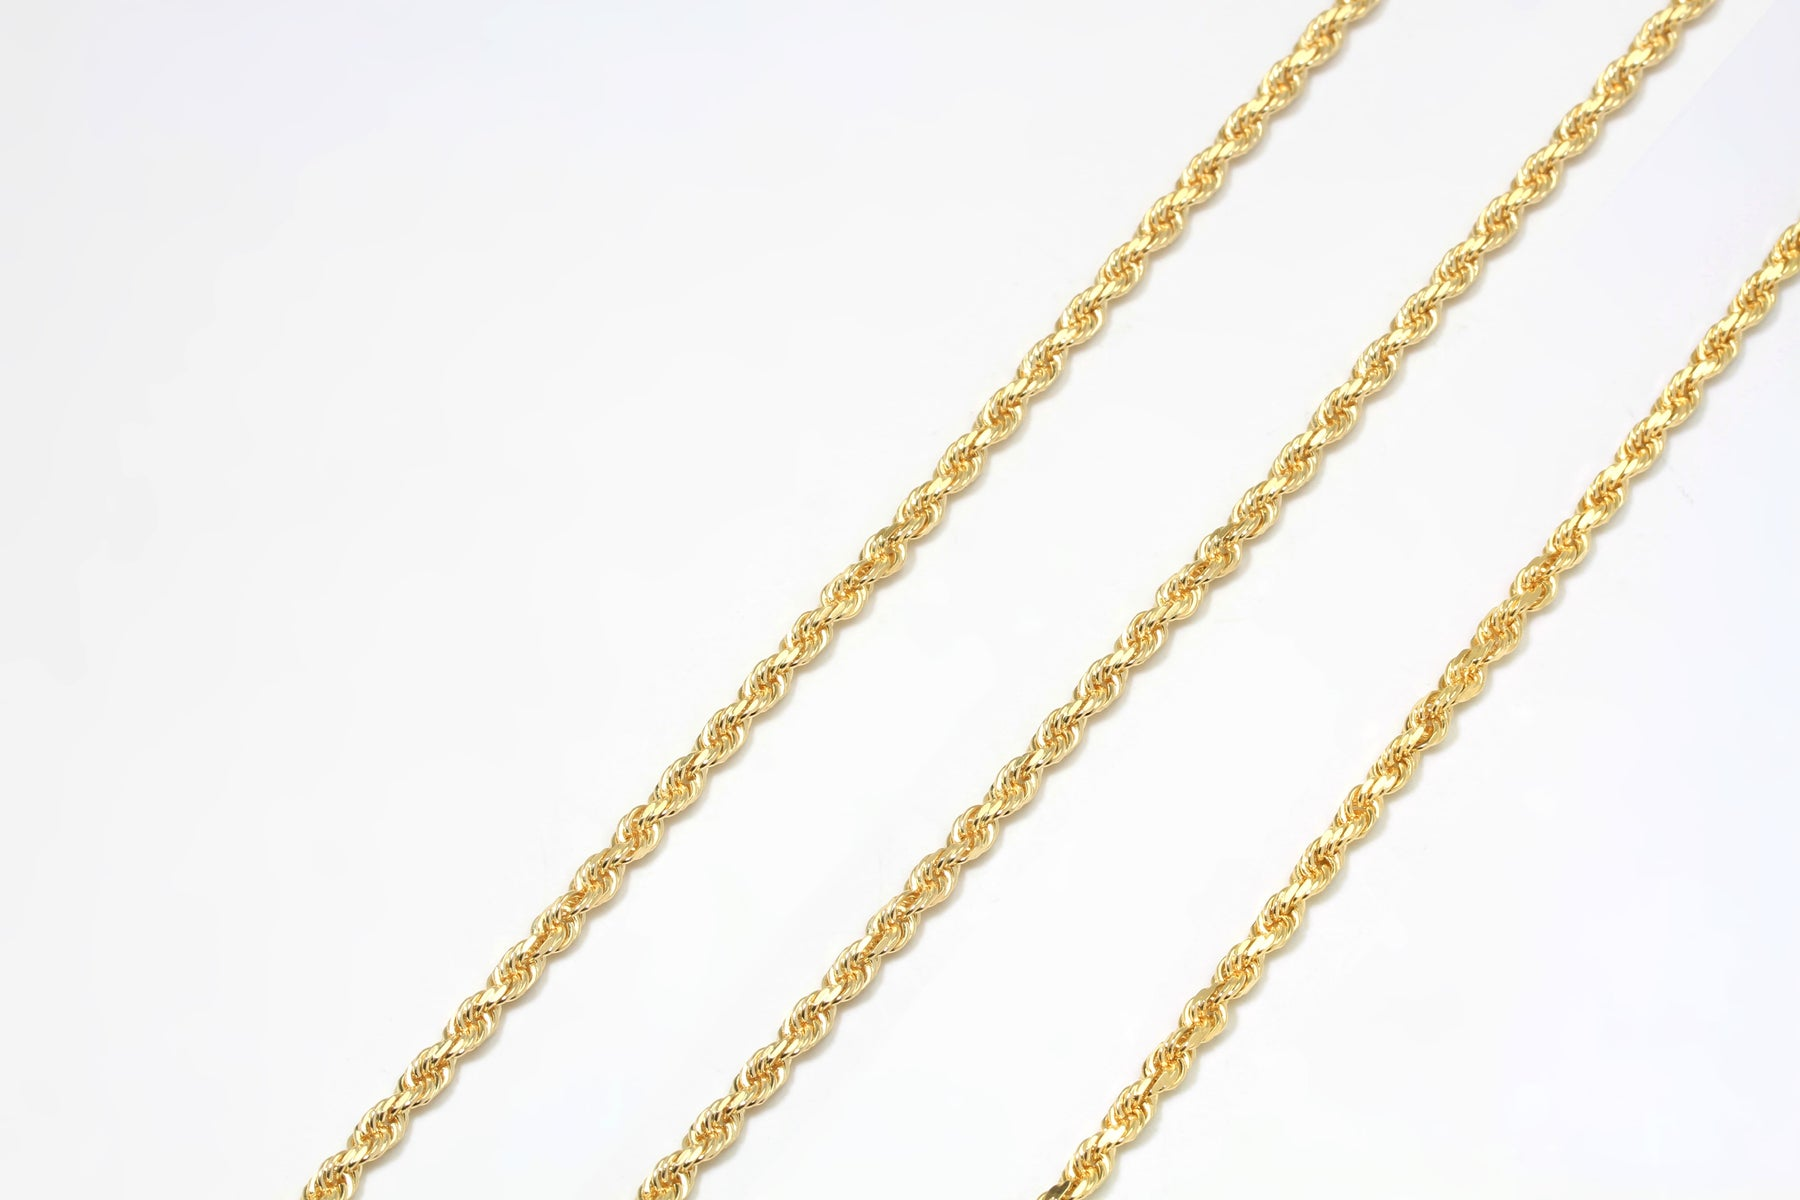 chains chain ladies rope yellow inch necklace newburysonline grams ml gold